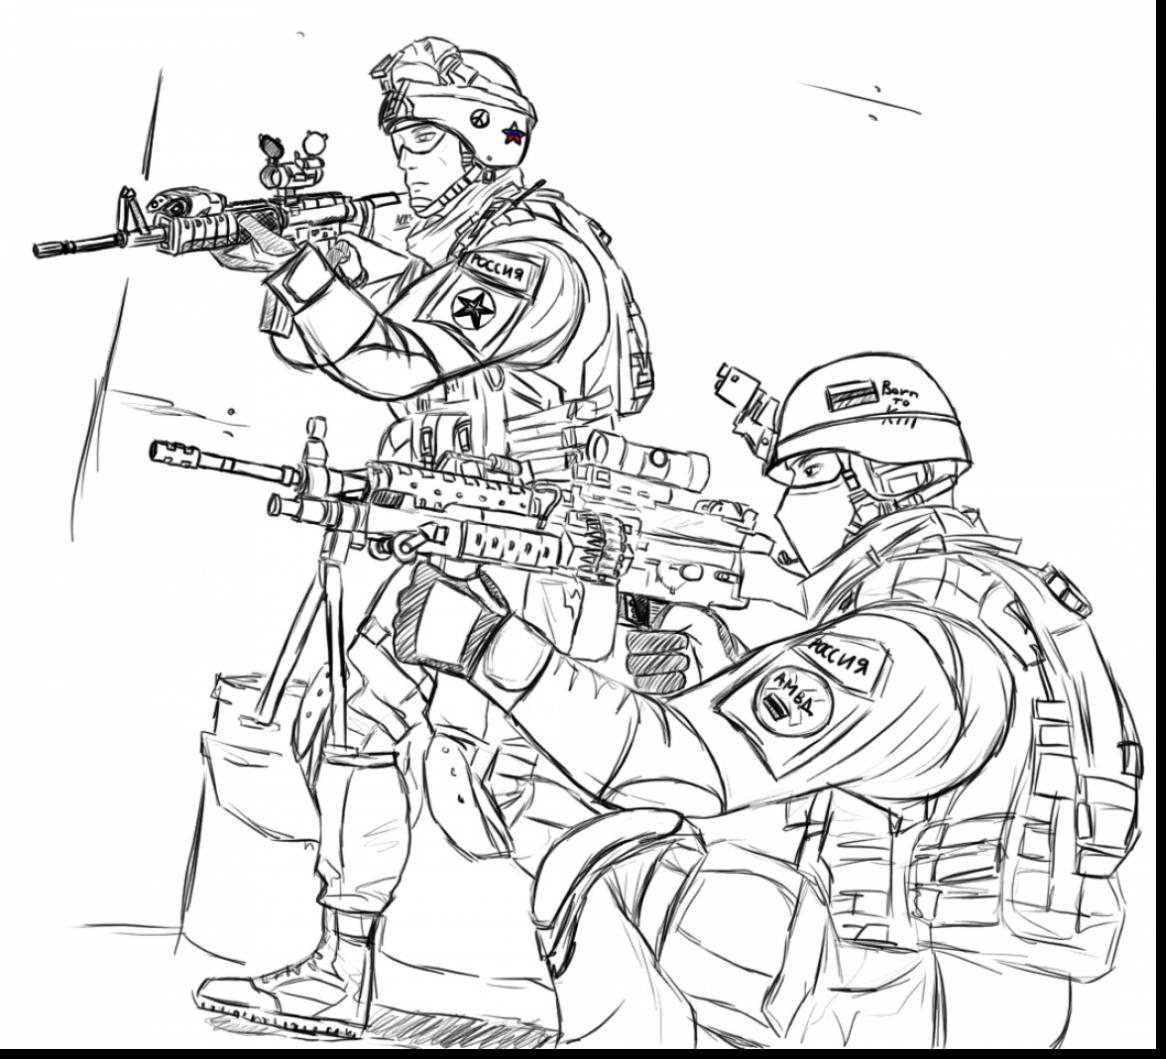 army base coloring pages 15 team fortress 2 coloring pages top free printable base army coloring pages